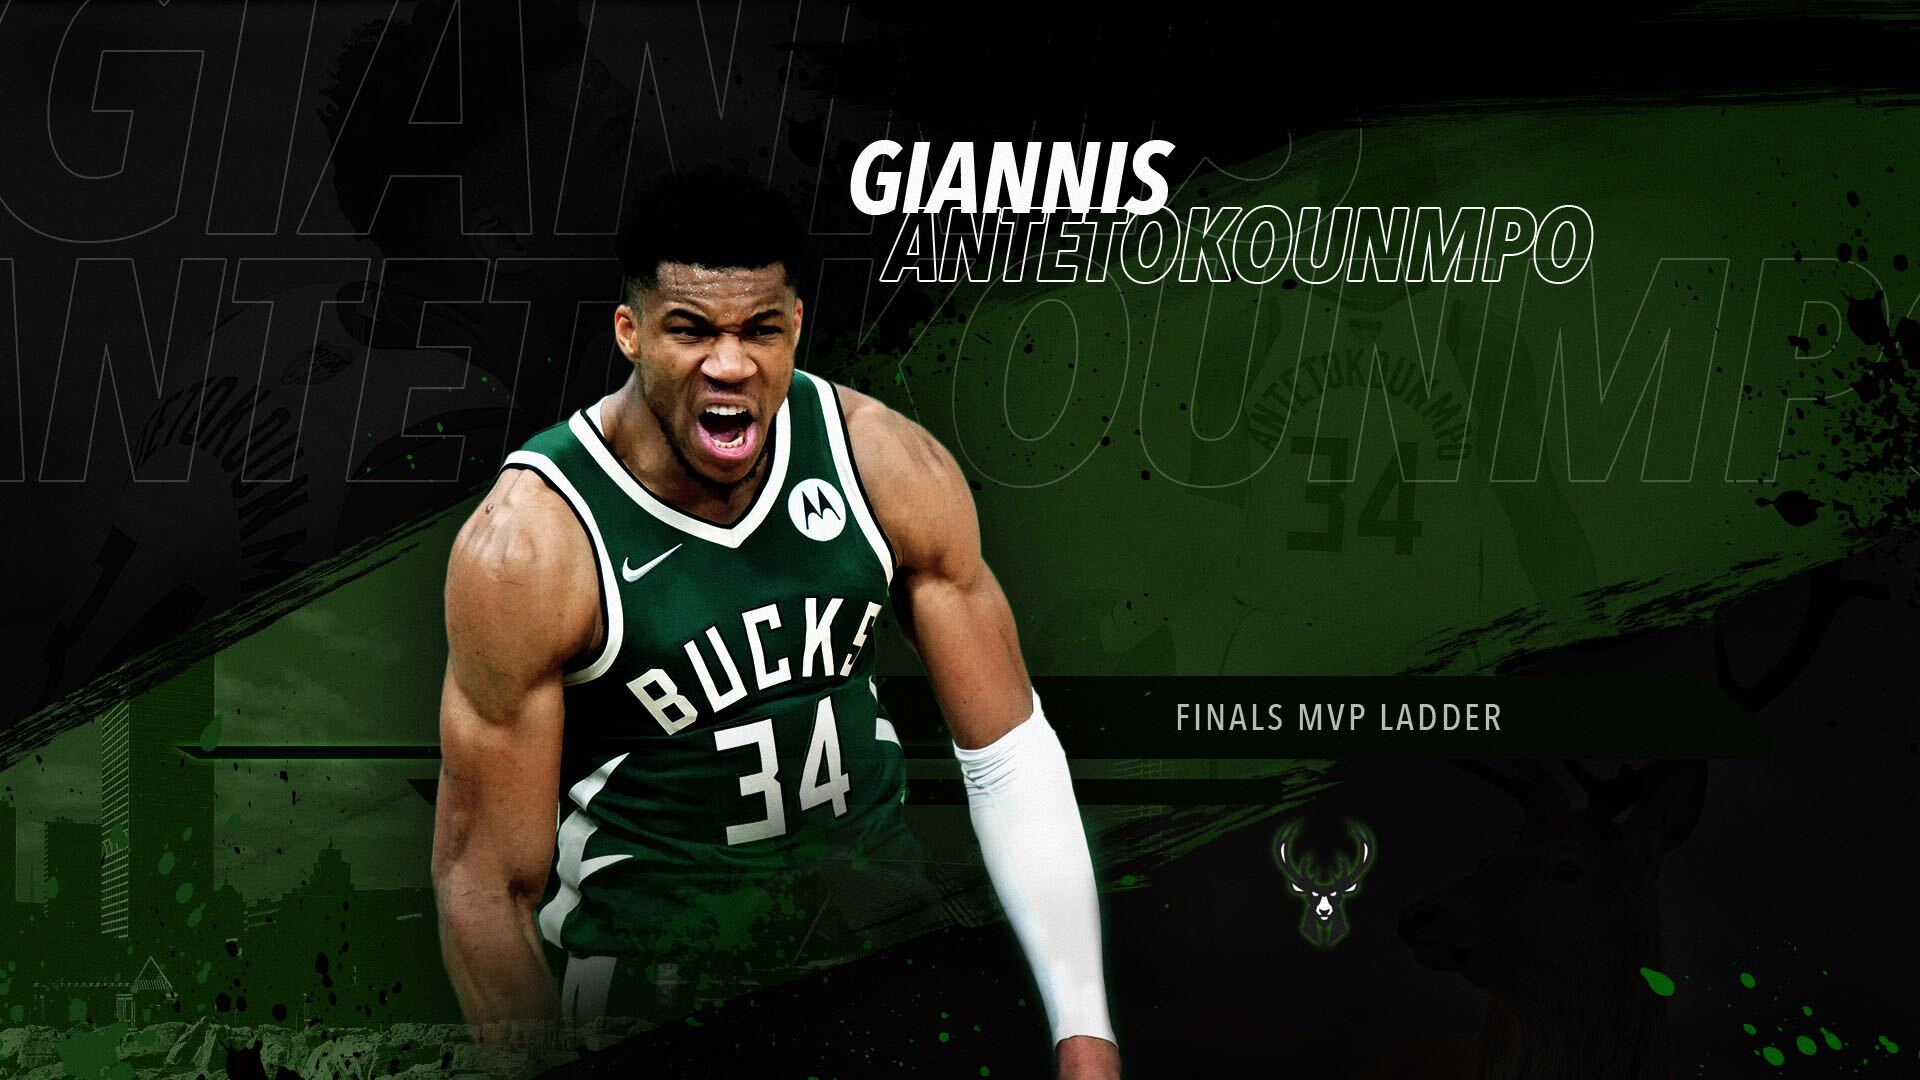 Finals MVP Ladder: Giannis Antetokounmpo caps dominant series with trophy